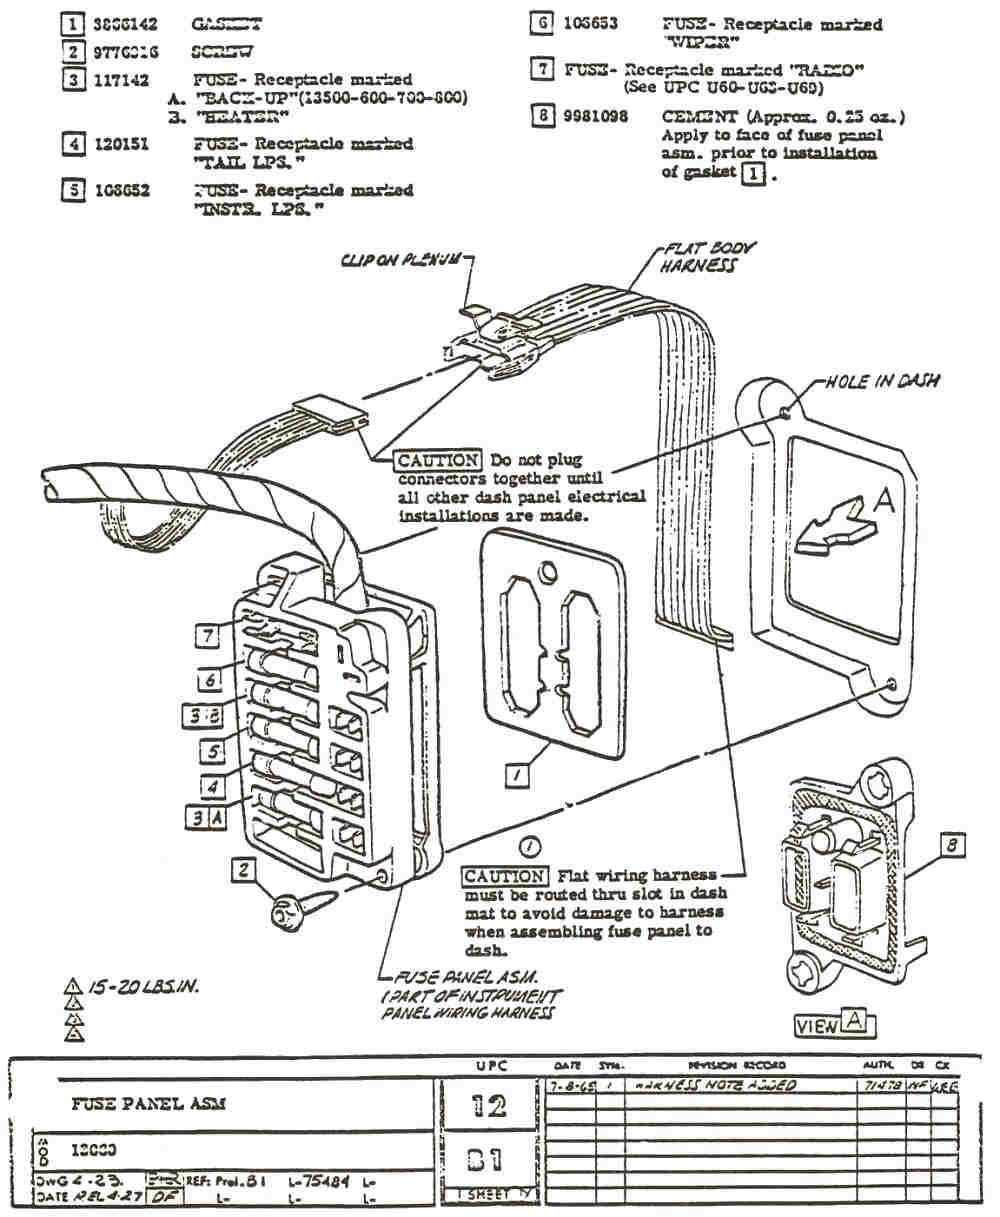 69 Camaro Fuse Box Diagram Wiring Schematics 1988 Location 67 Schematic Block